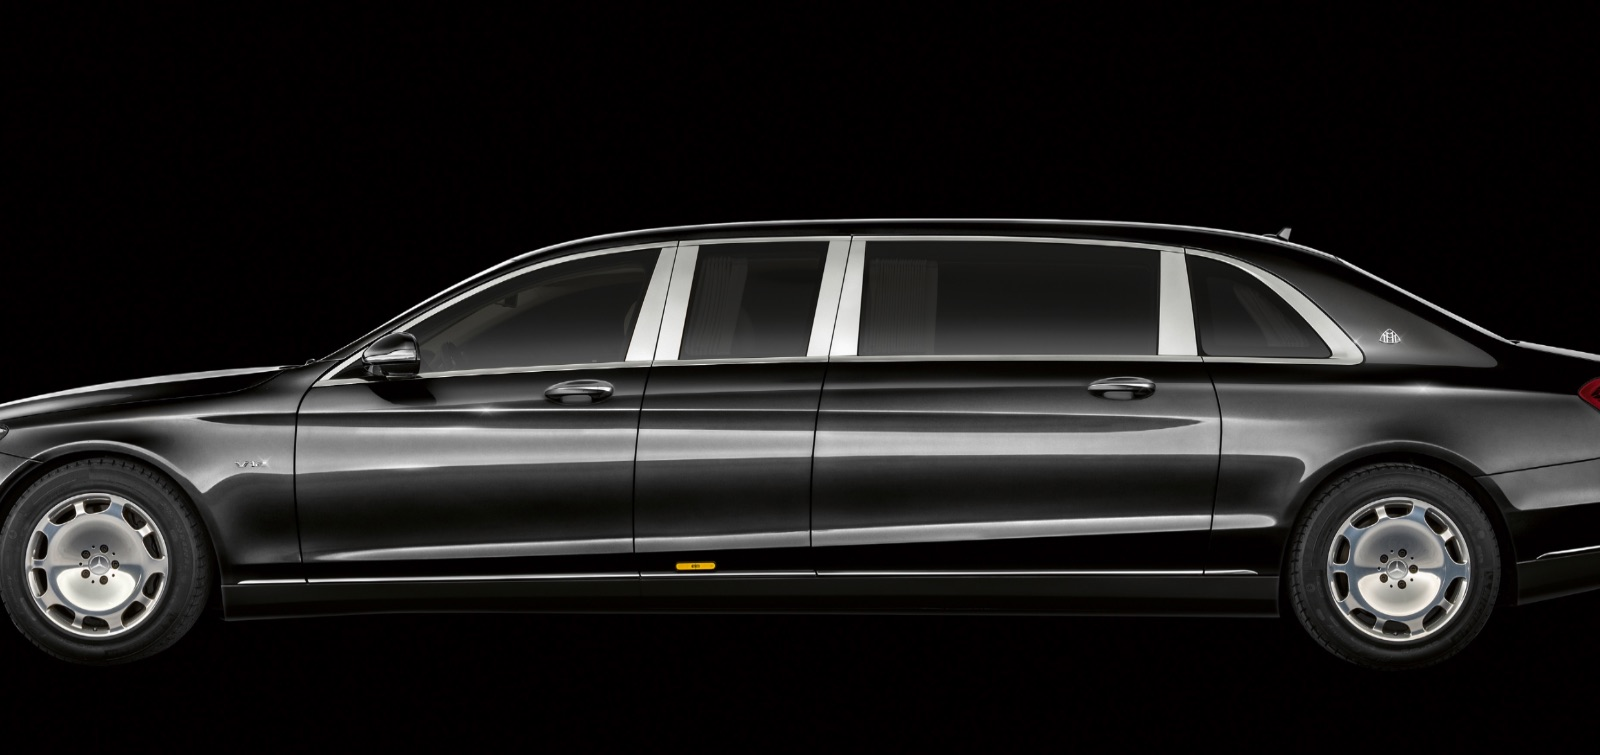 Maybach limo